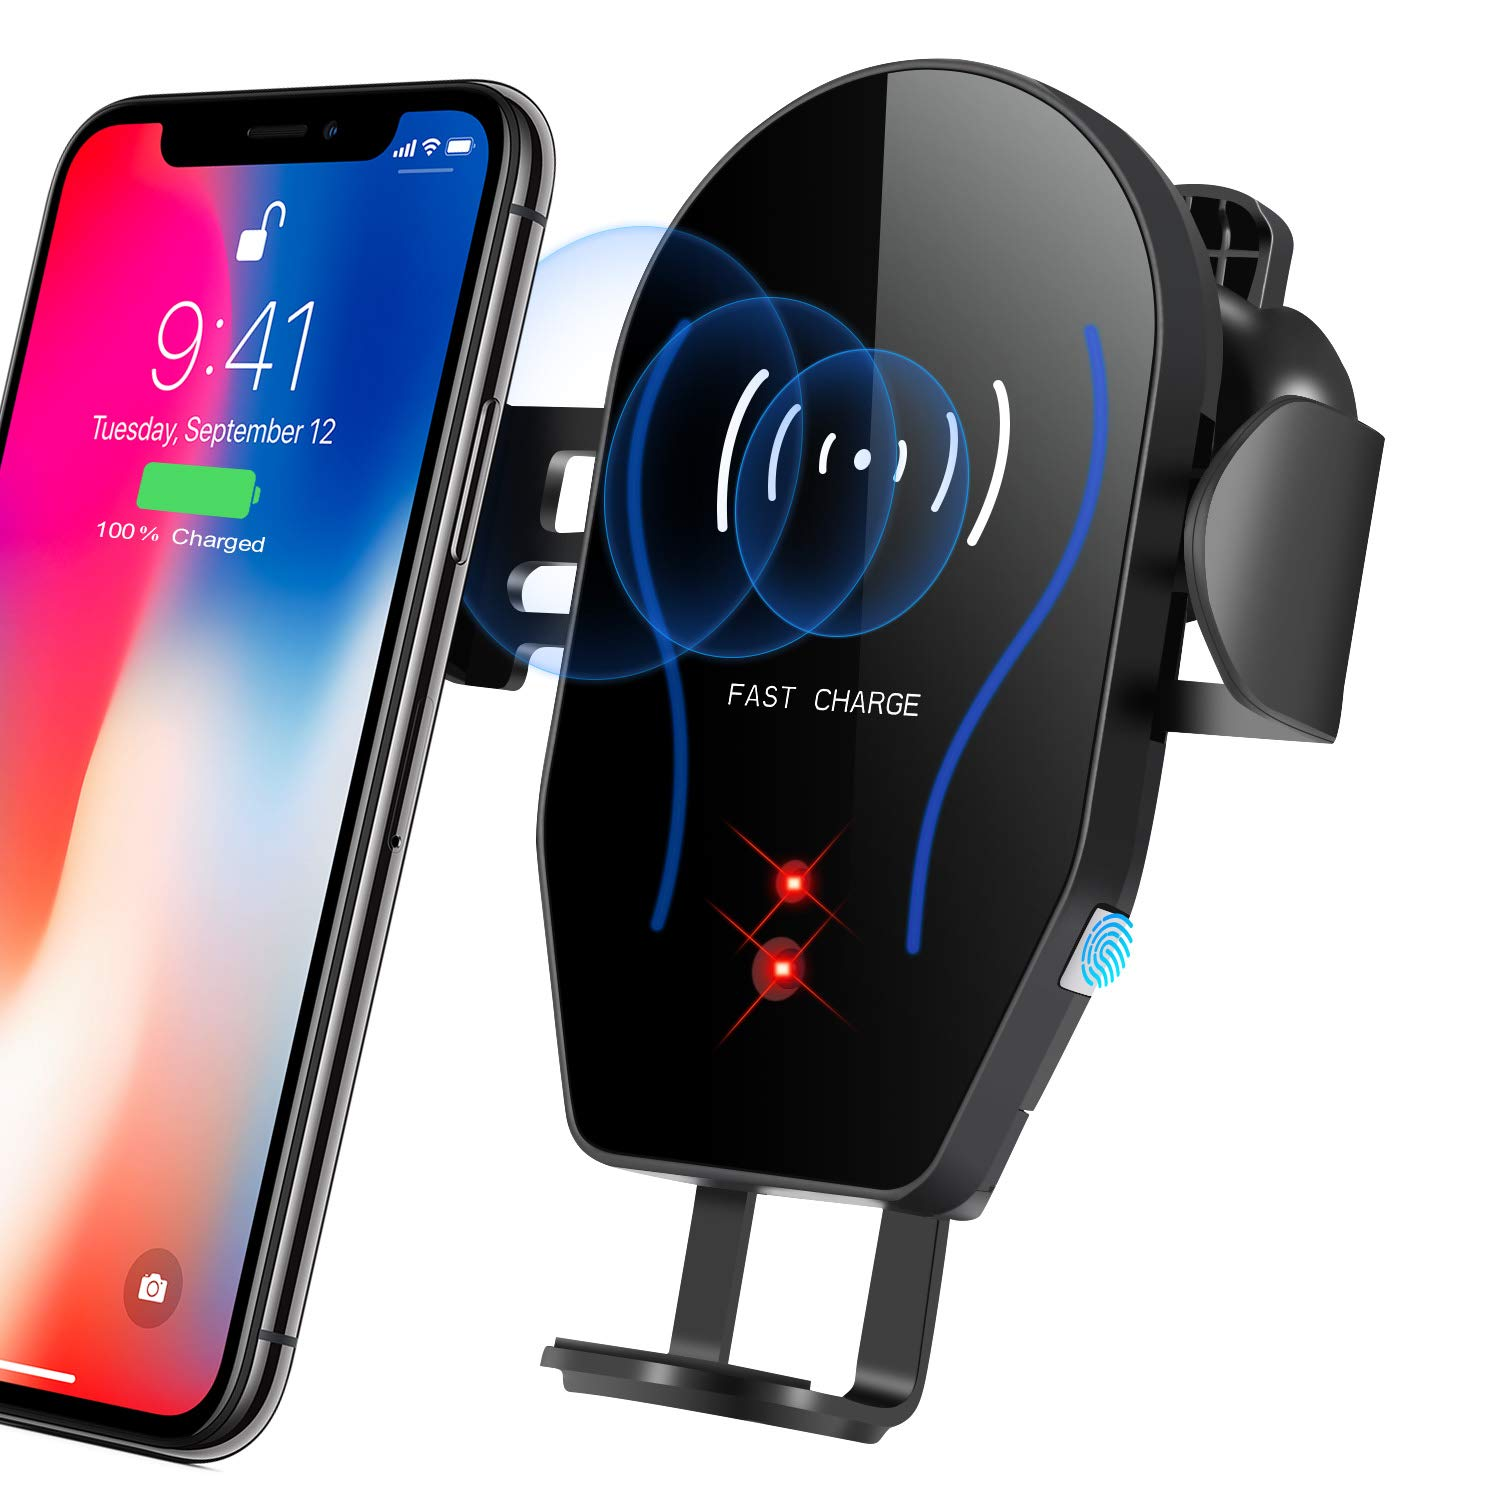 Phone Holder for Car,Car Phone Mount, Automatic Clamping Wireless Charging Car Mount Air Vent Cell Phone Holder Charger Car Mount Compatible with iPhone Xr Xs Max 8plus